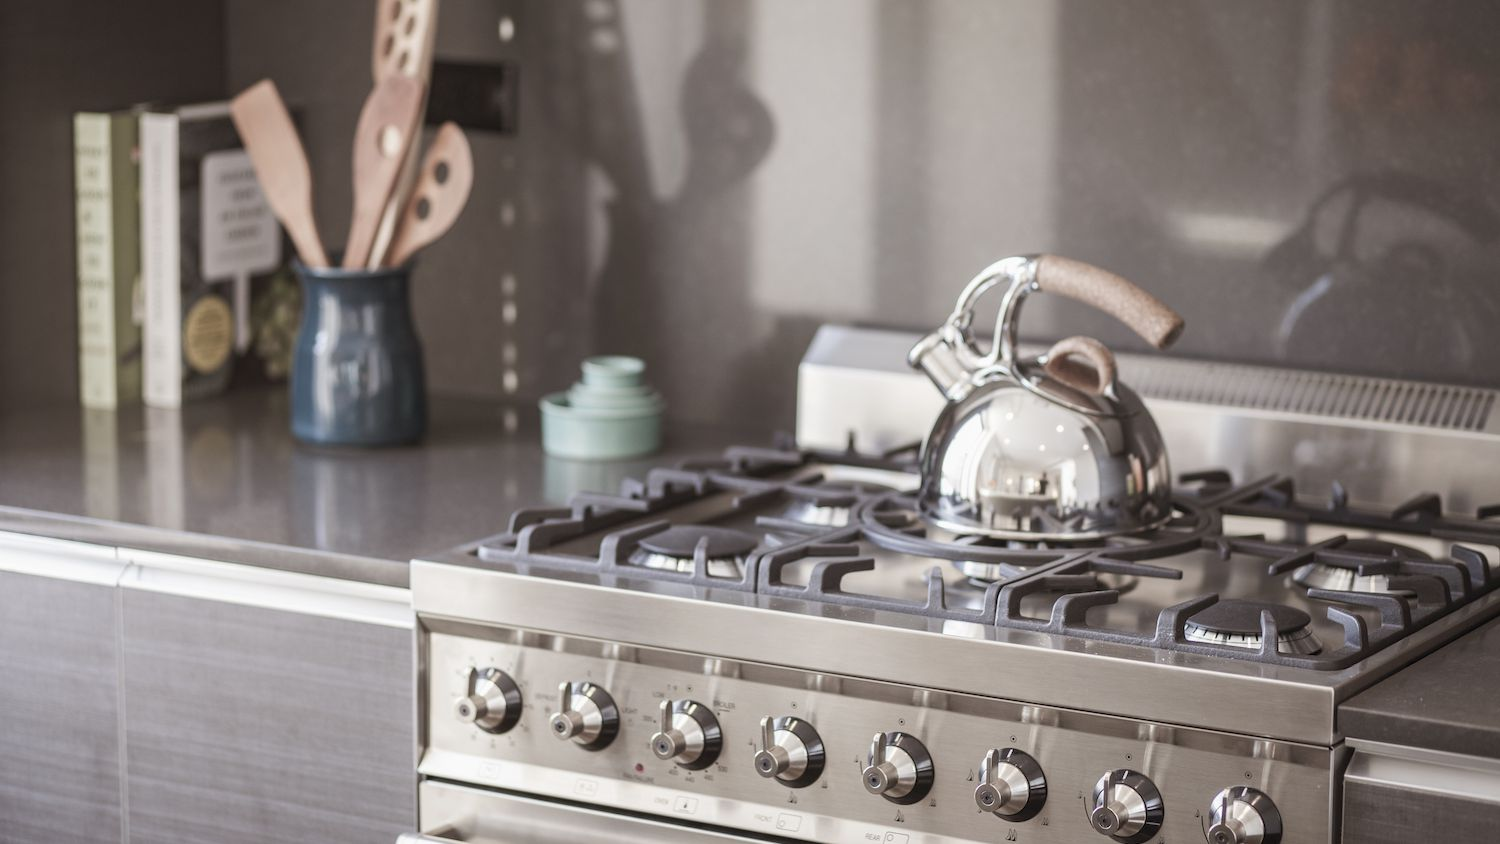 - Slide-In Vs Drop-In Cooking Ranges: What's The Difference?